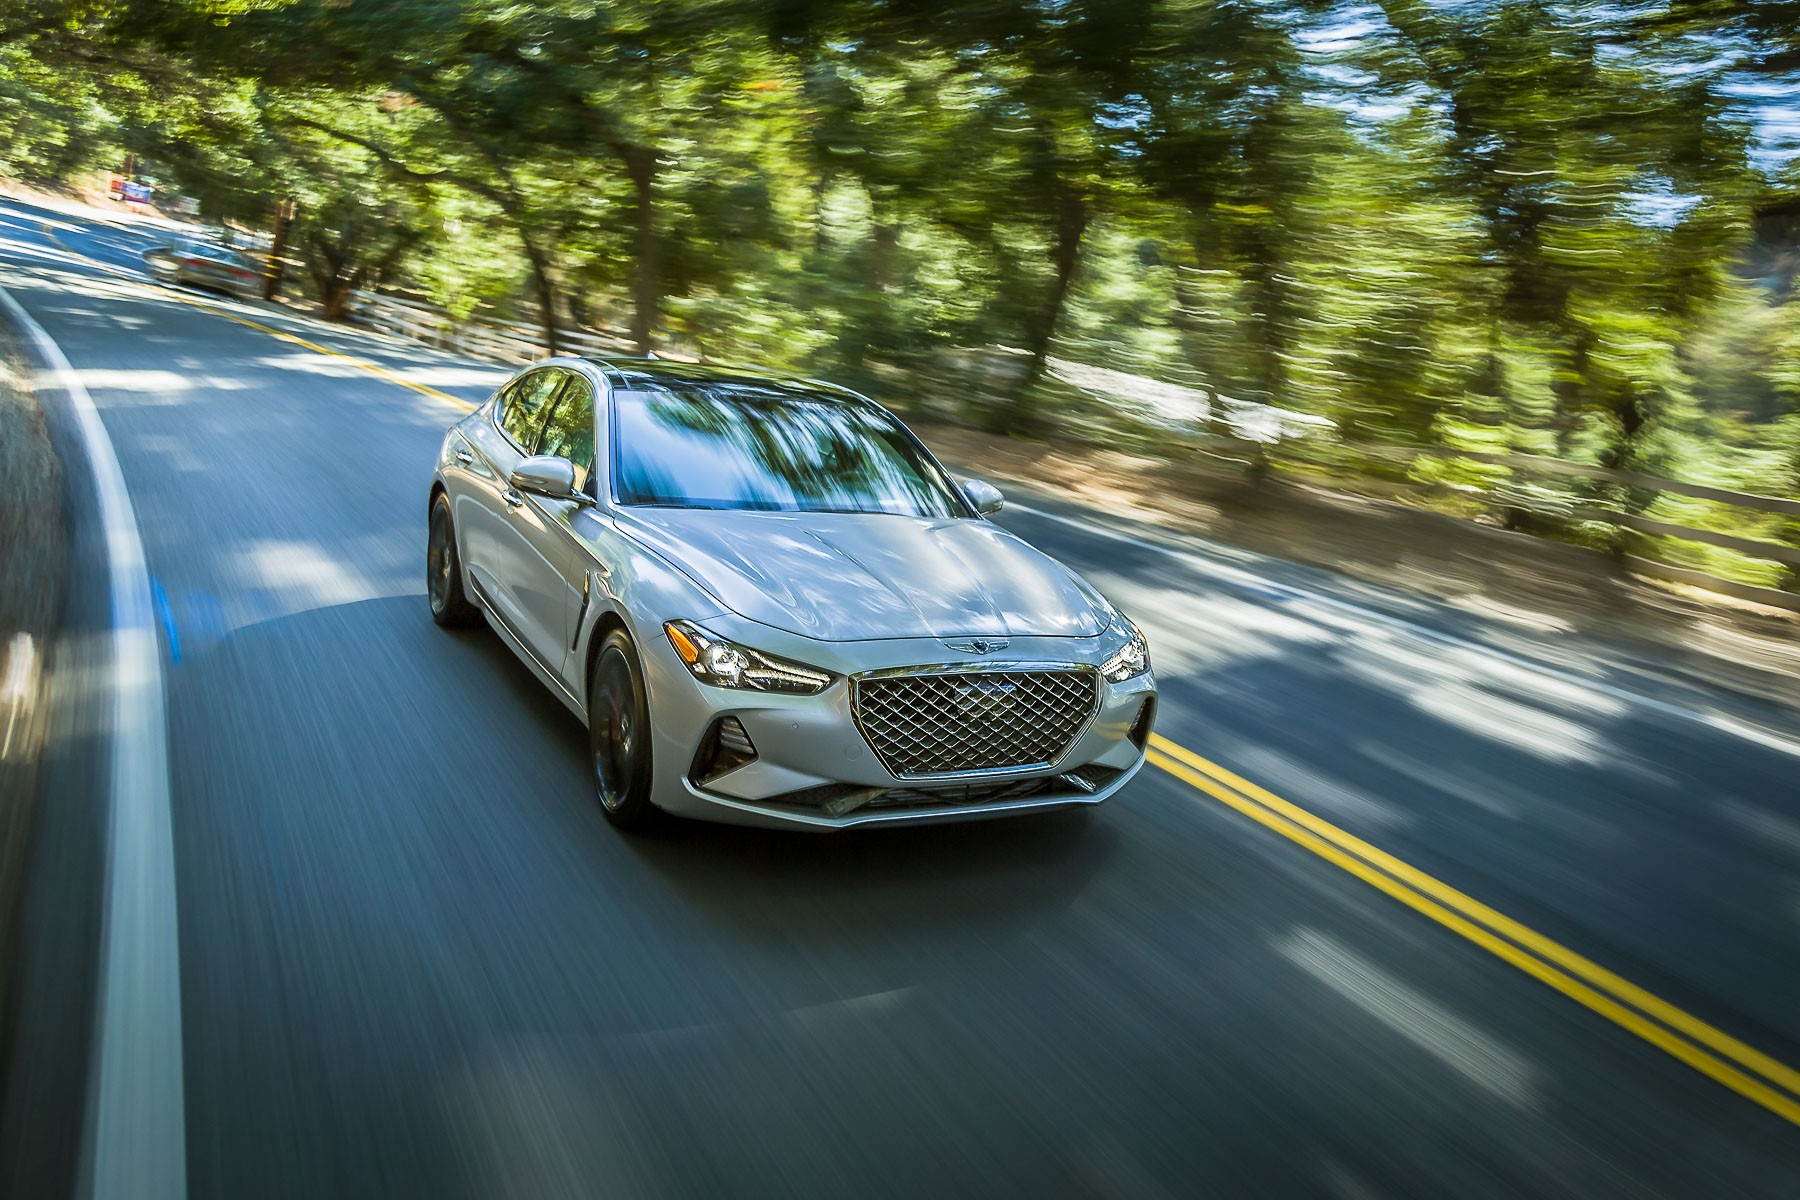 2019 Genesis G70 Available With Manual Transmission In The ...